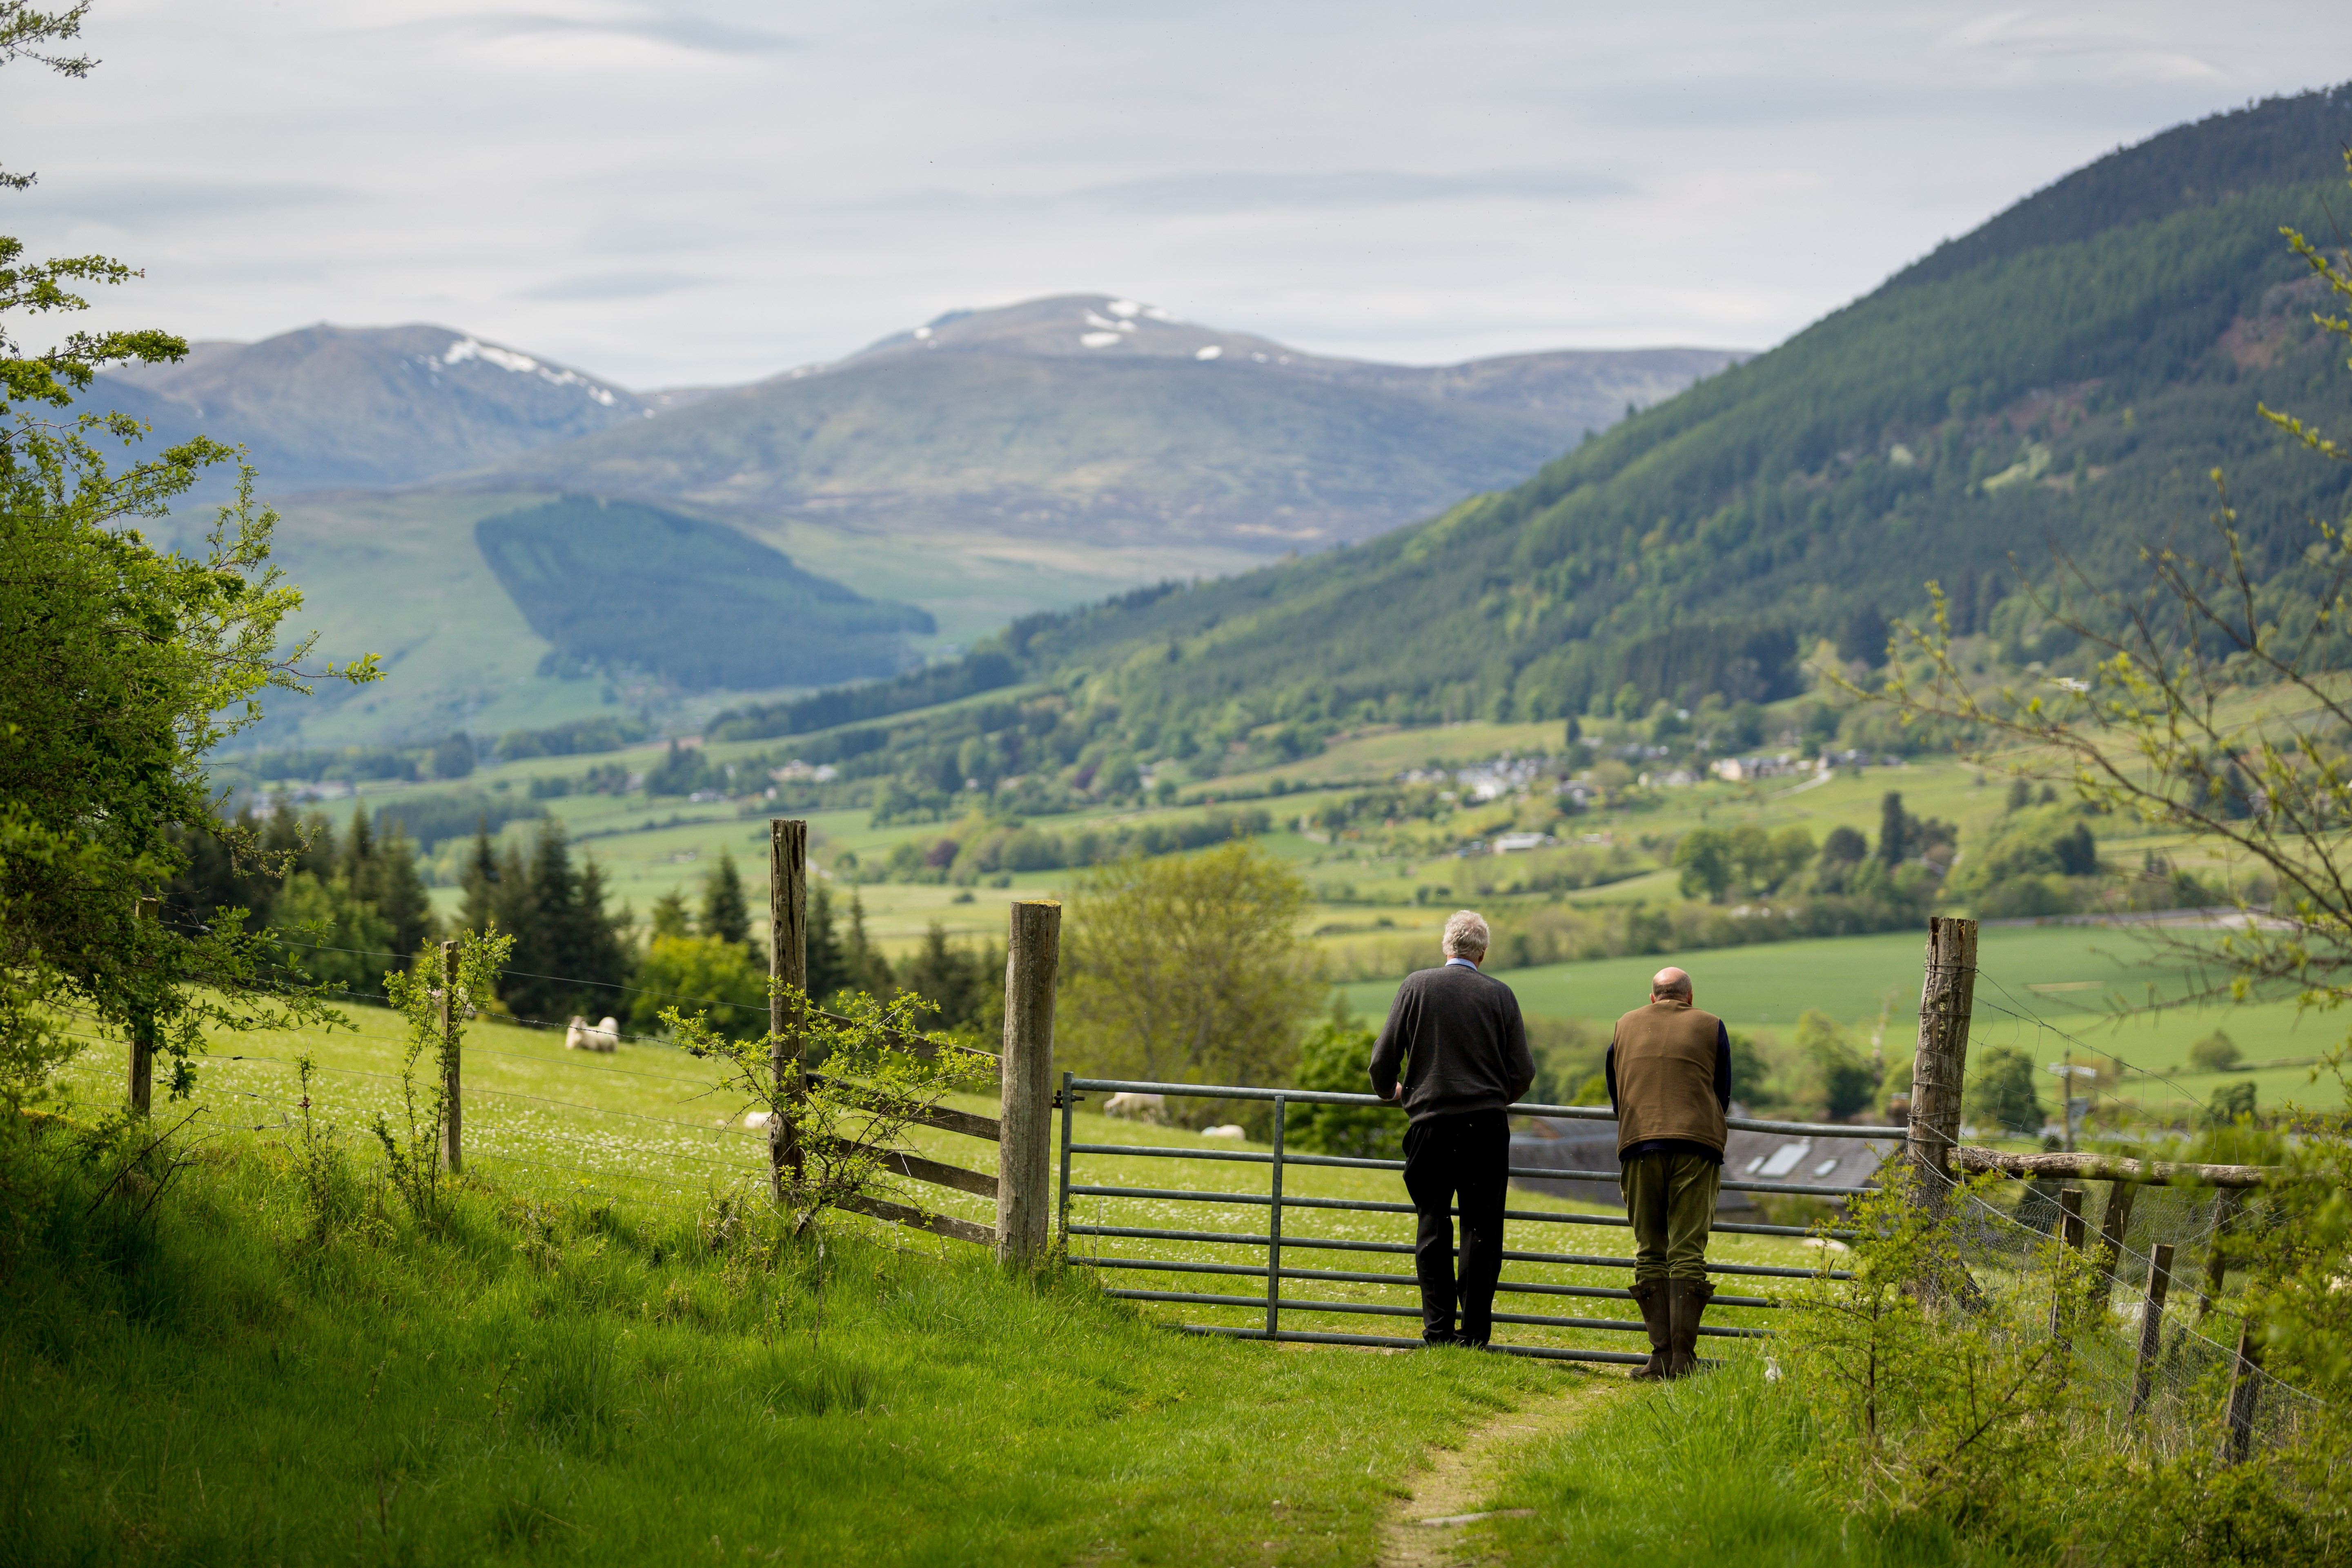 Bolfracks Estate Aberfeldy Scotland landscape with farmers and sheep - Credit Matthias Kremer.jpg (1)